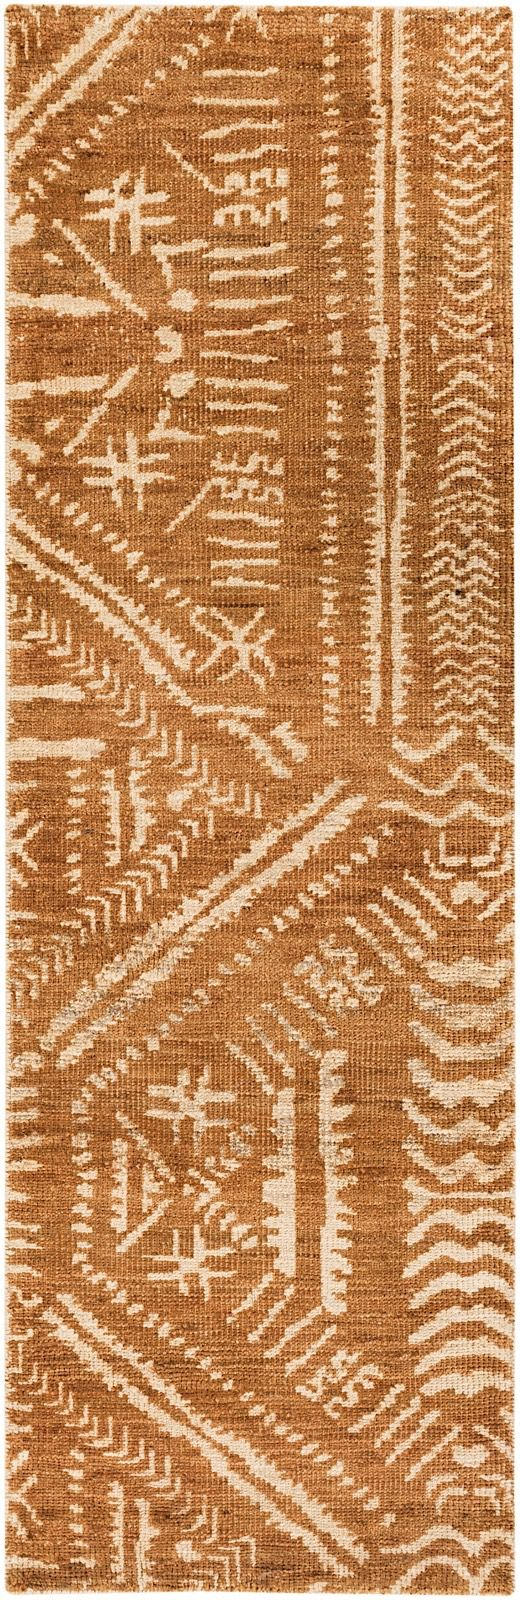 surya mandela natural fiber area rug collection